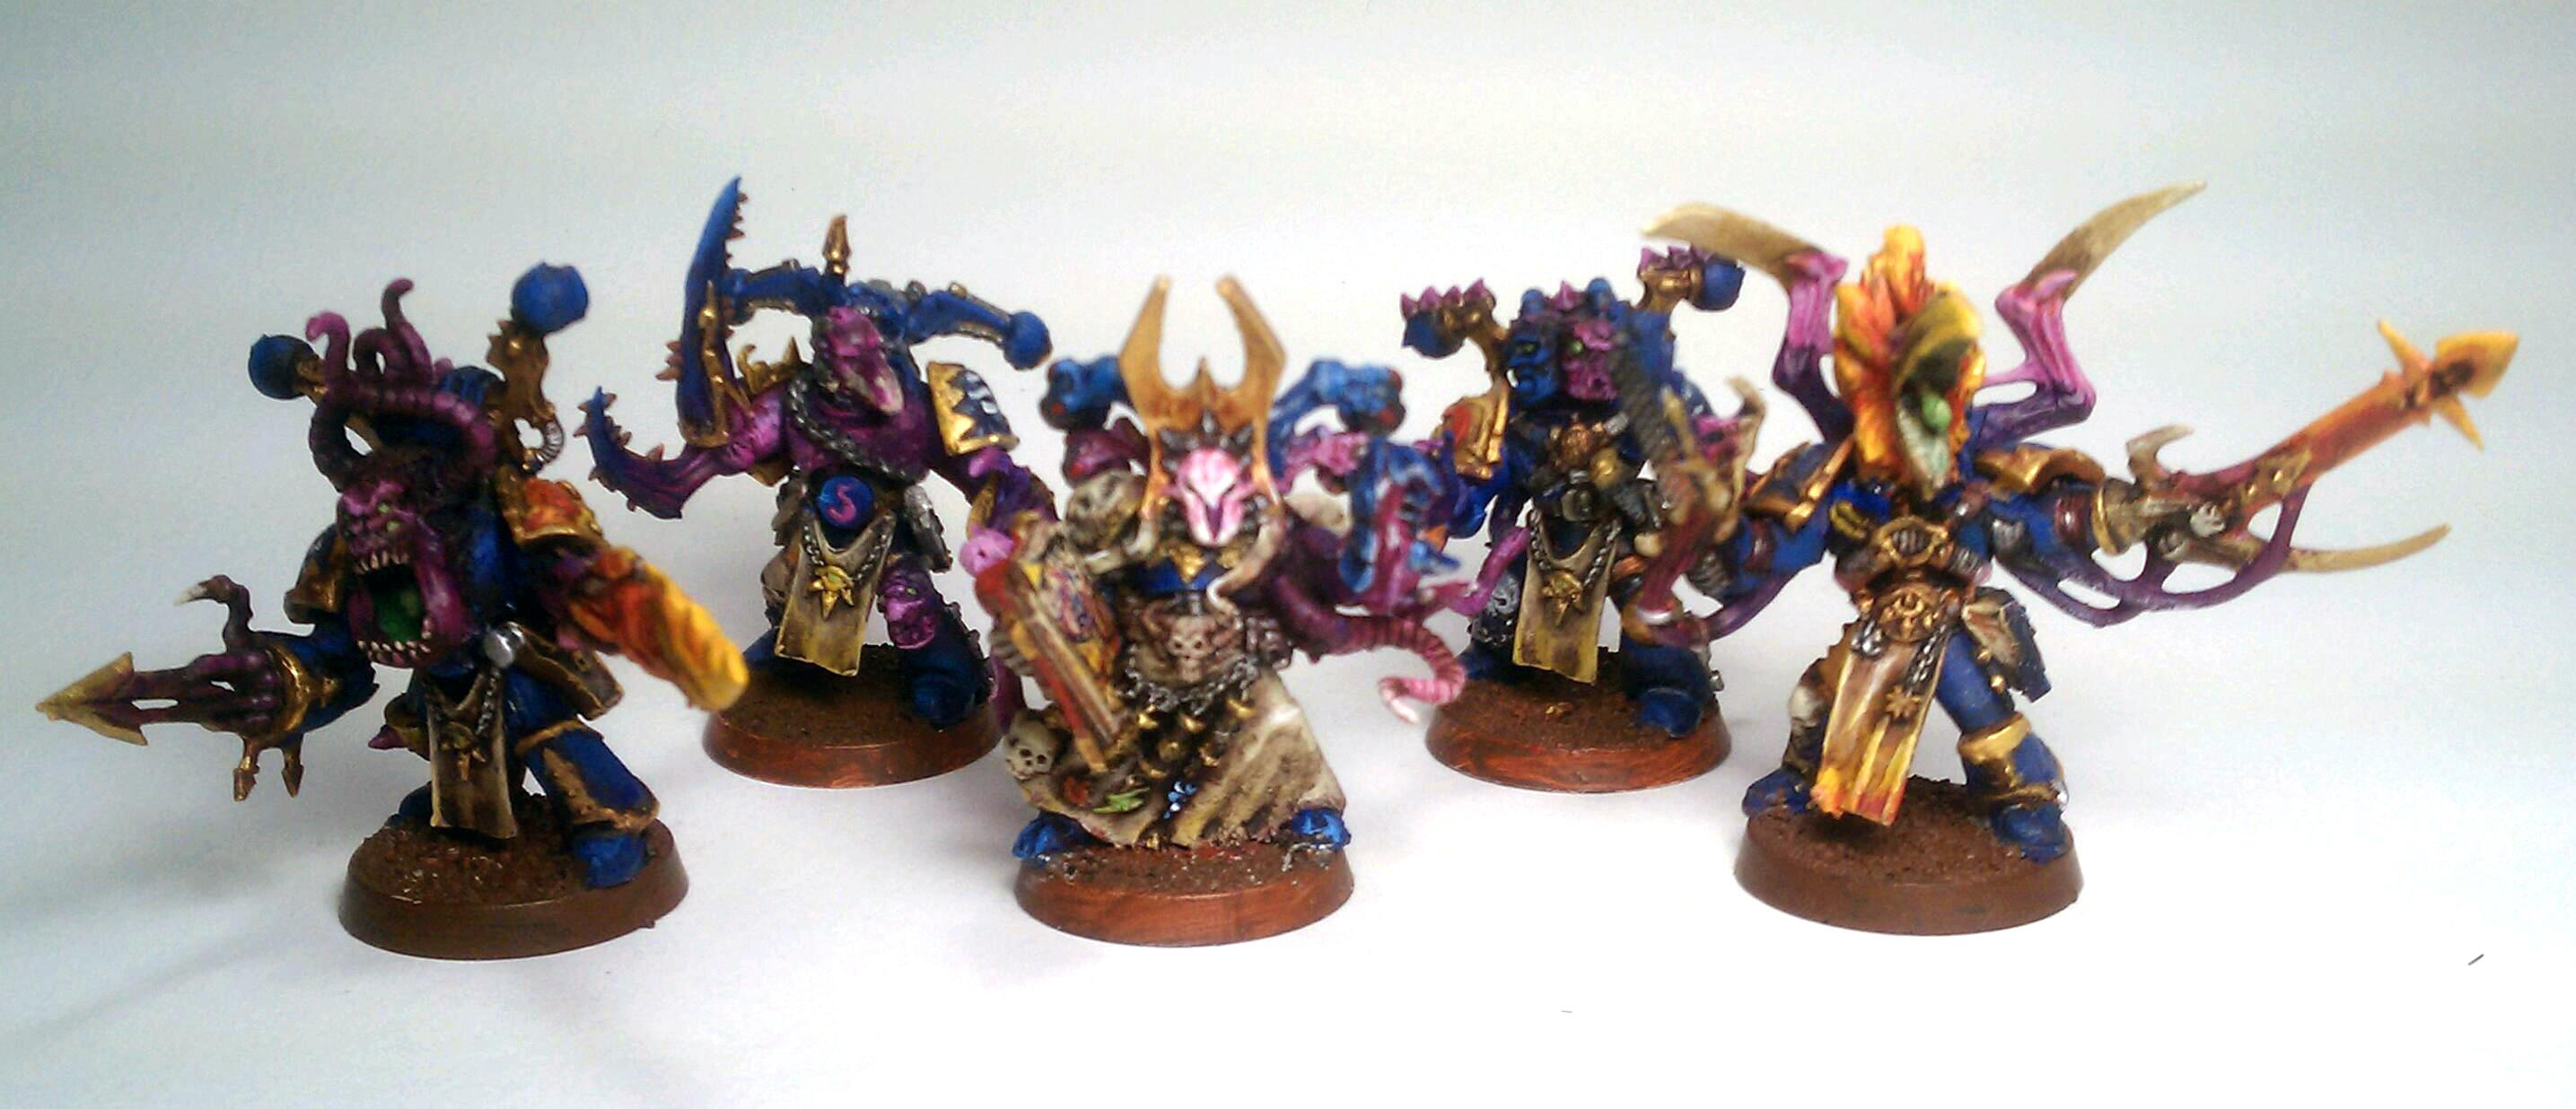 Chaos, Chaos Space Marines, Conversion, Daemons, Flamers, Pink, Pink Horror, Possessed, Possessed Chaos Space Marines, Sorcerer, Thousand Sons, Tzeentch